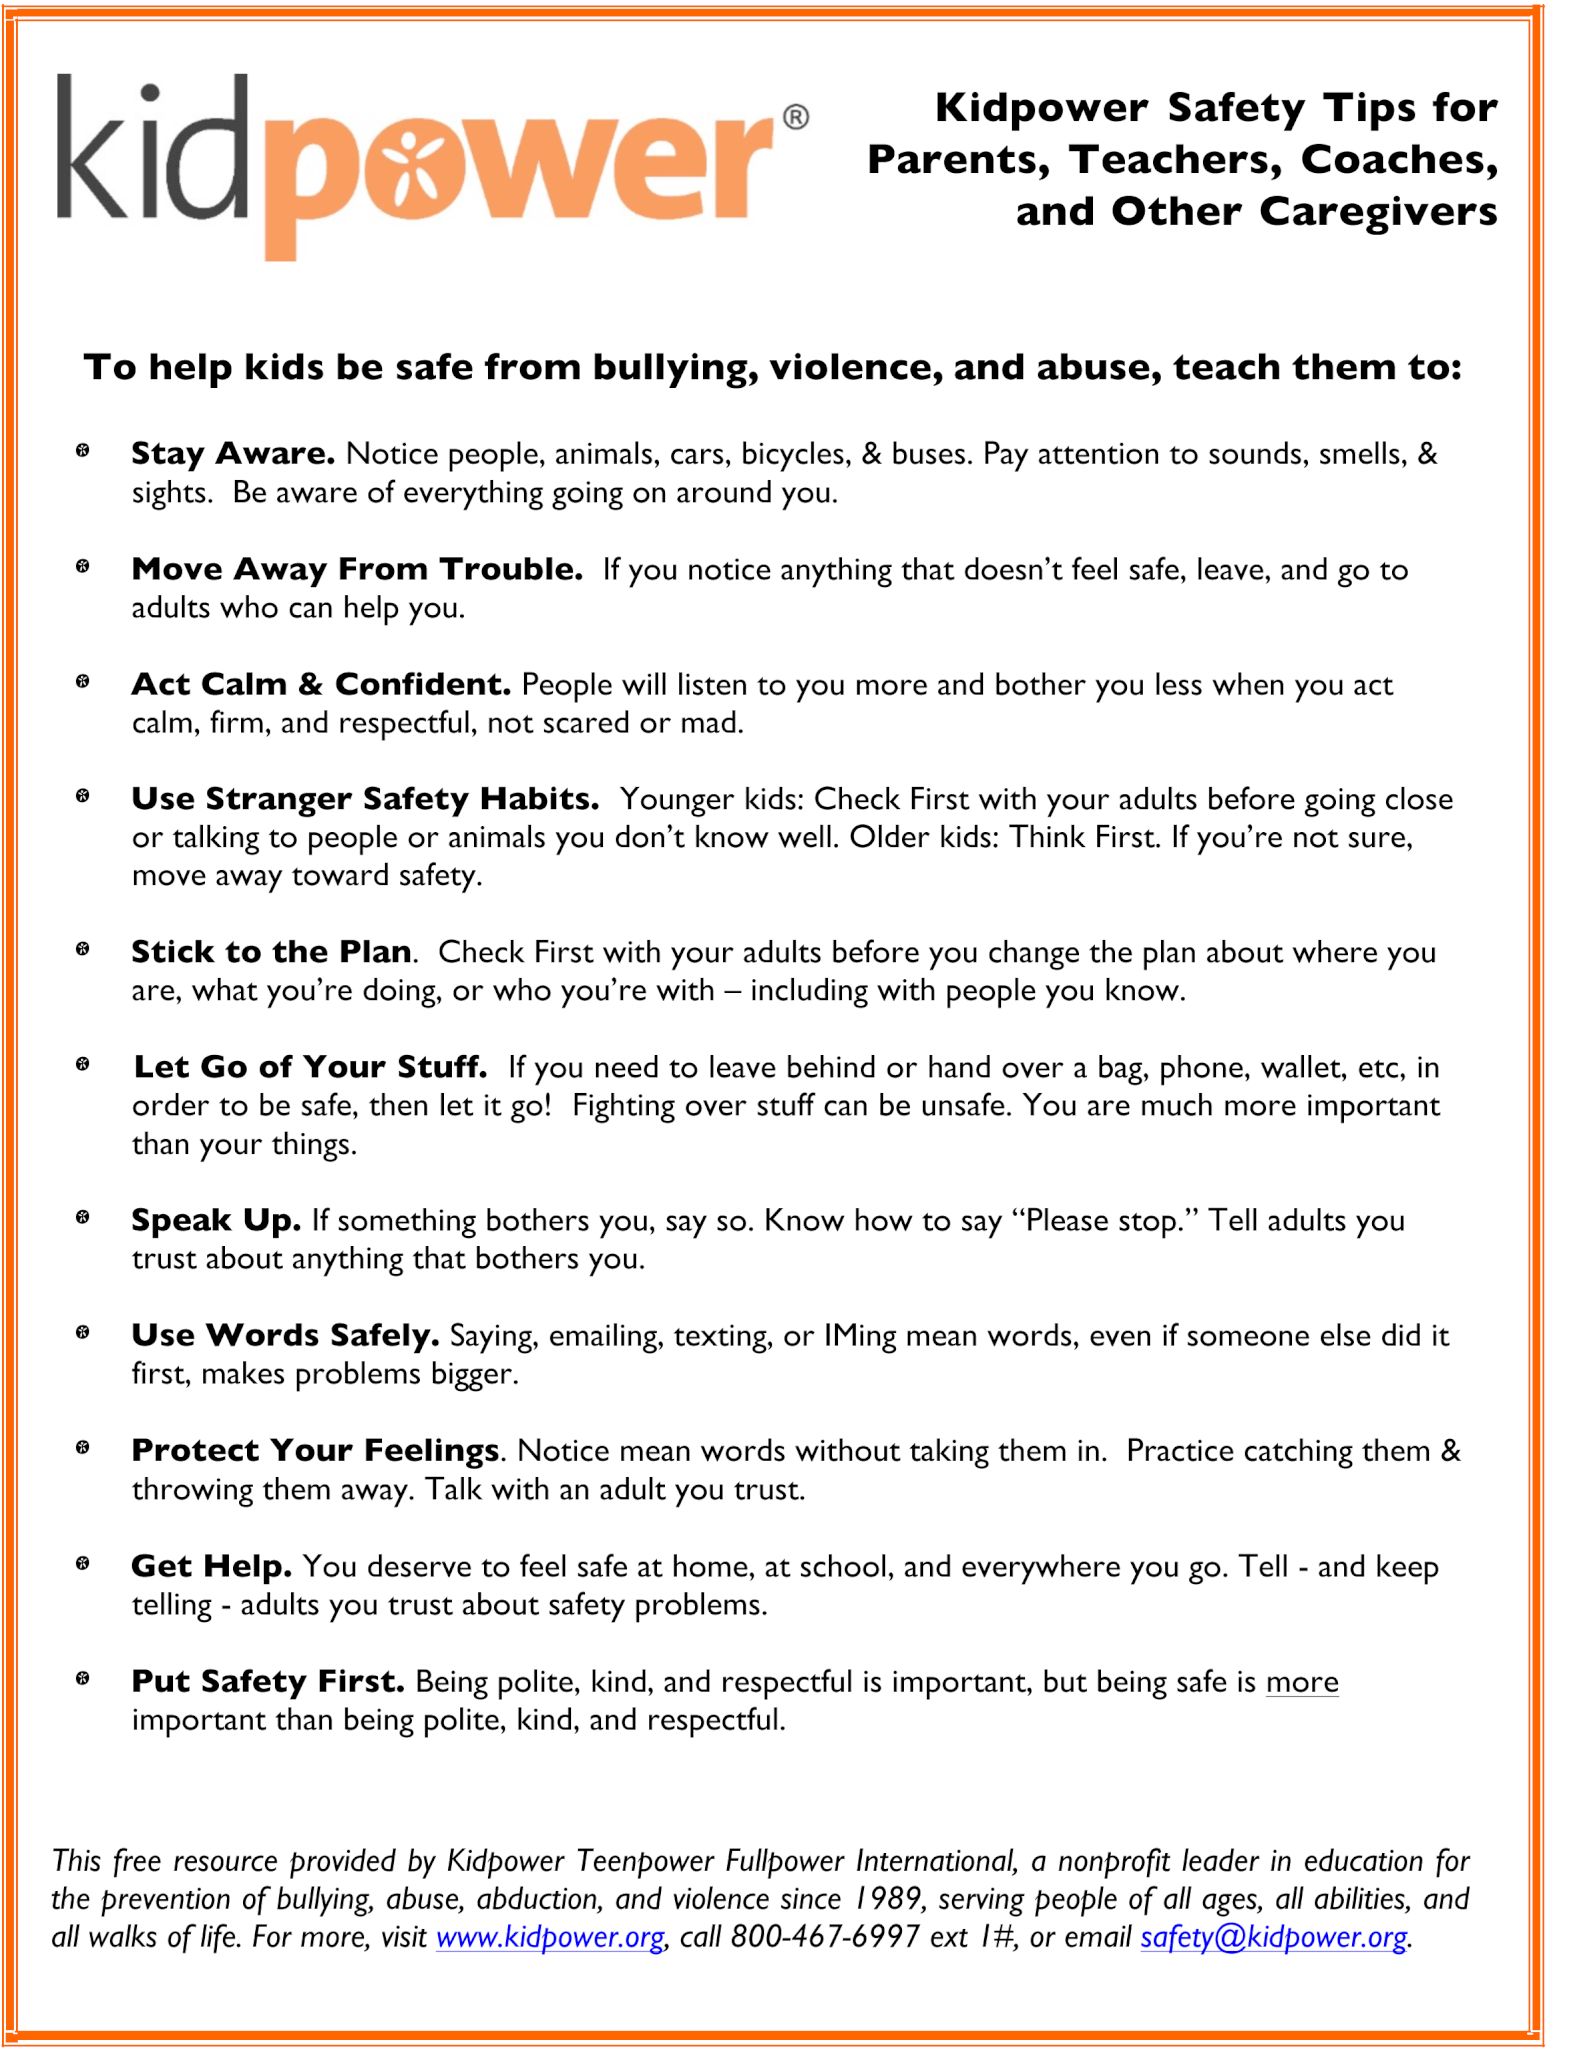 Kidpower Safety Tips for Parents, Teachers, Coaches, and Other Caregivers